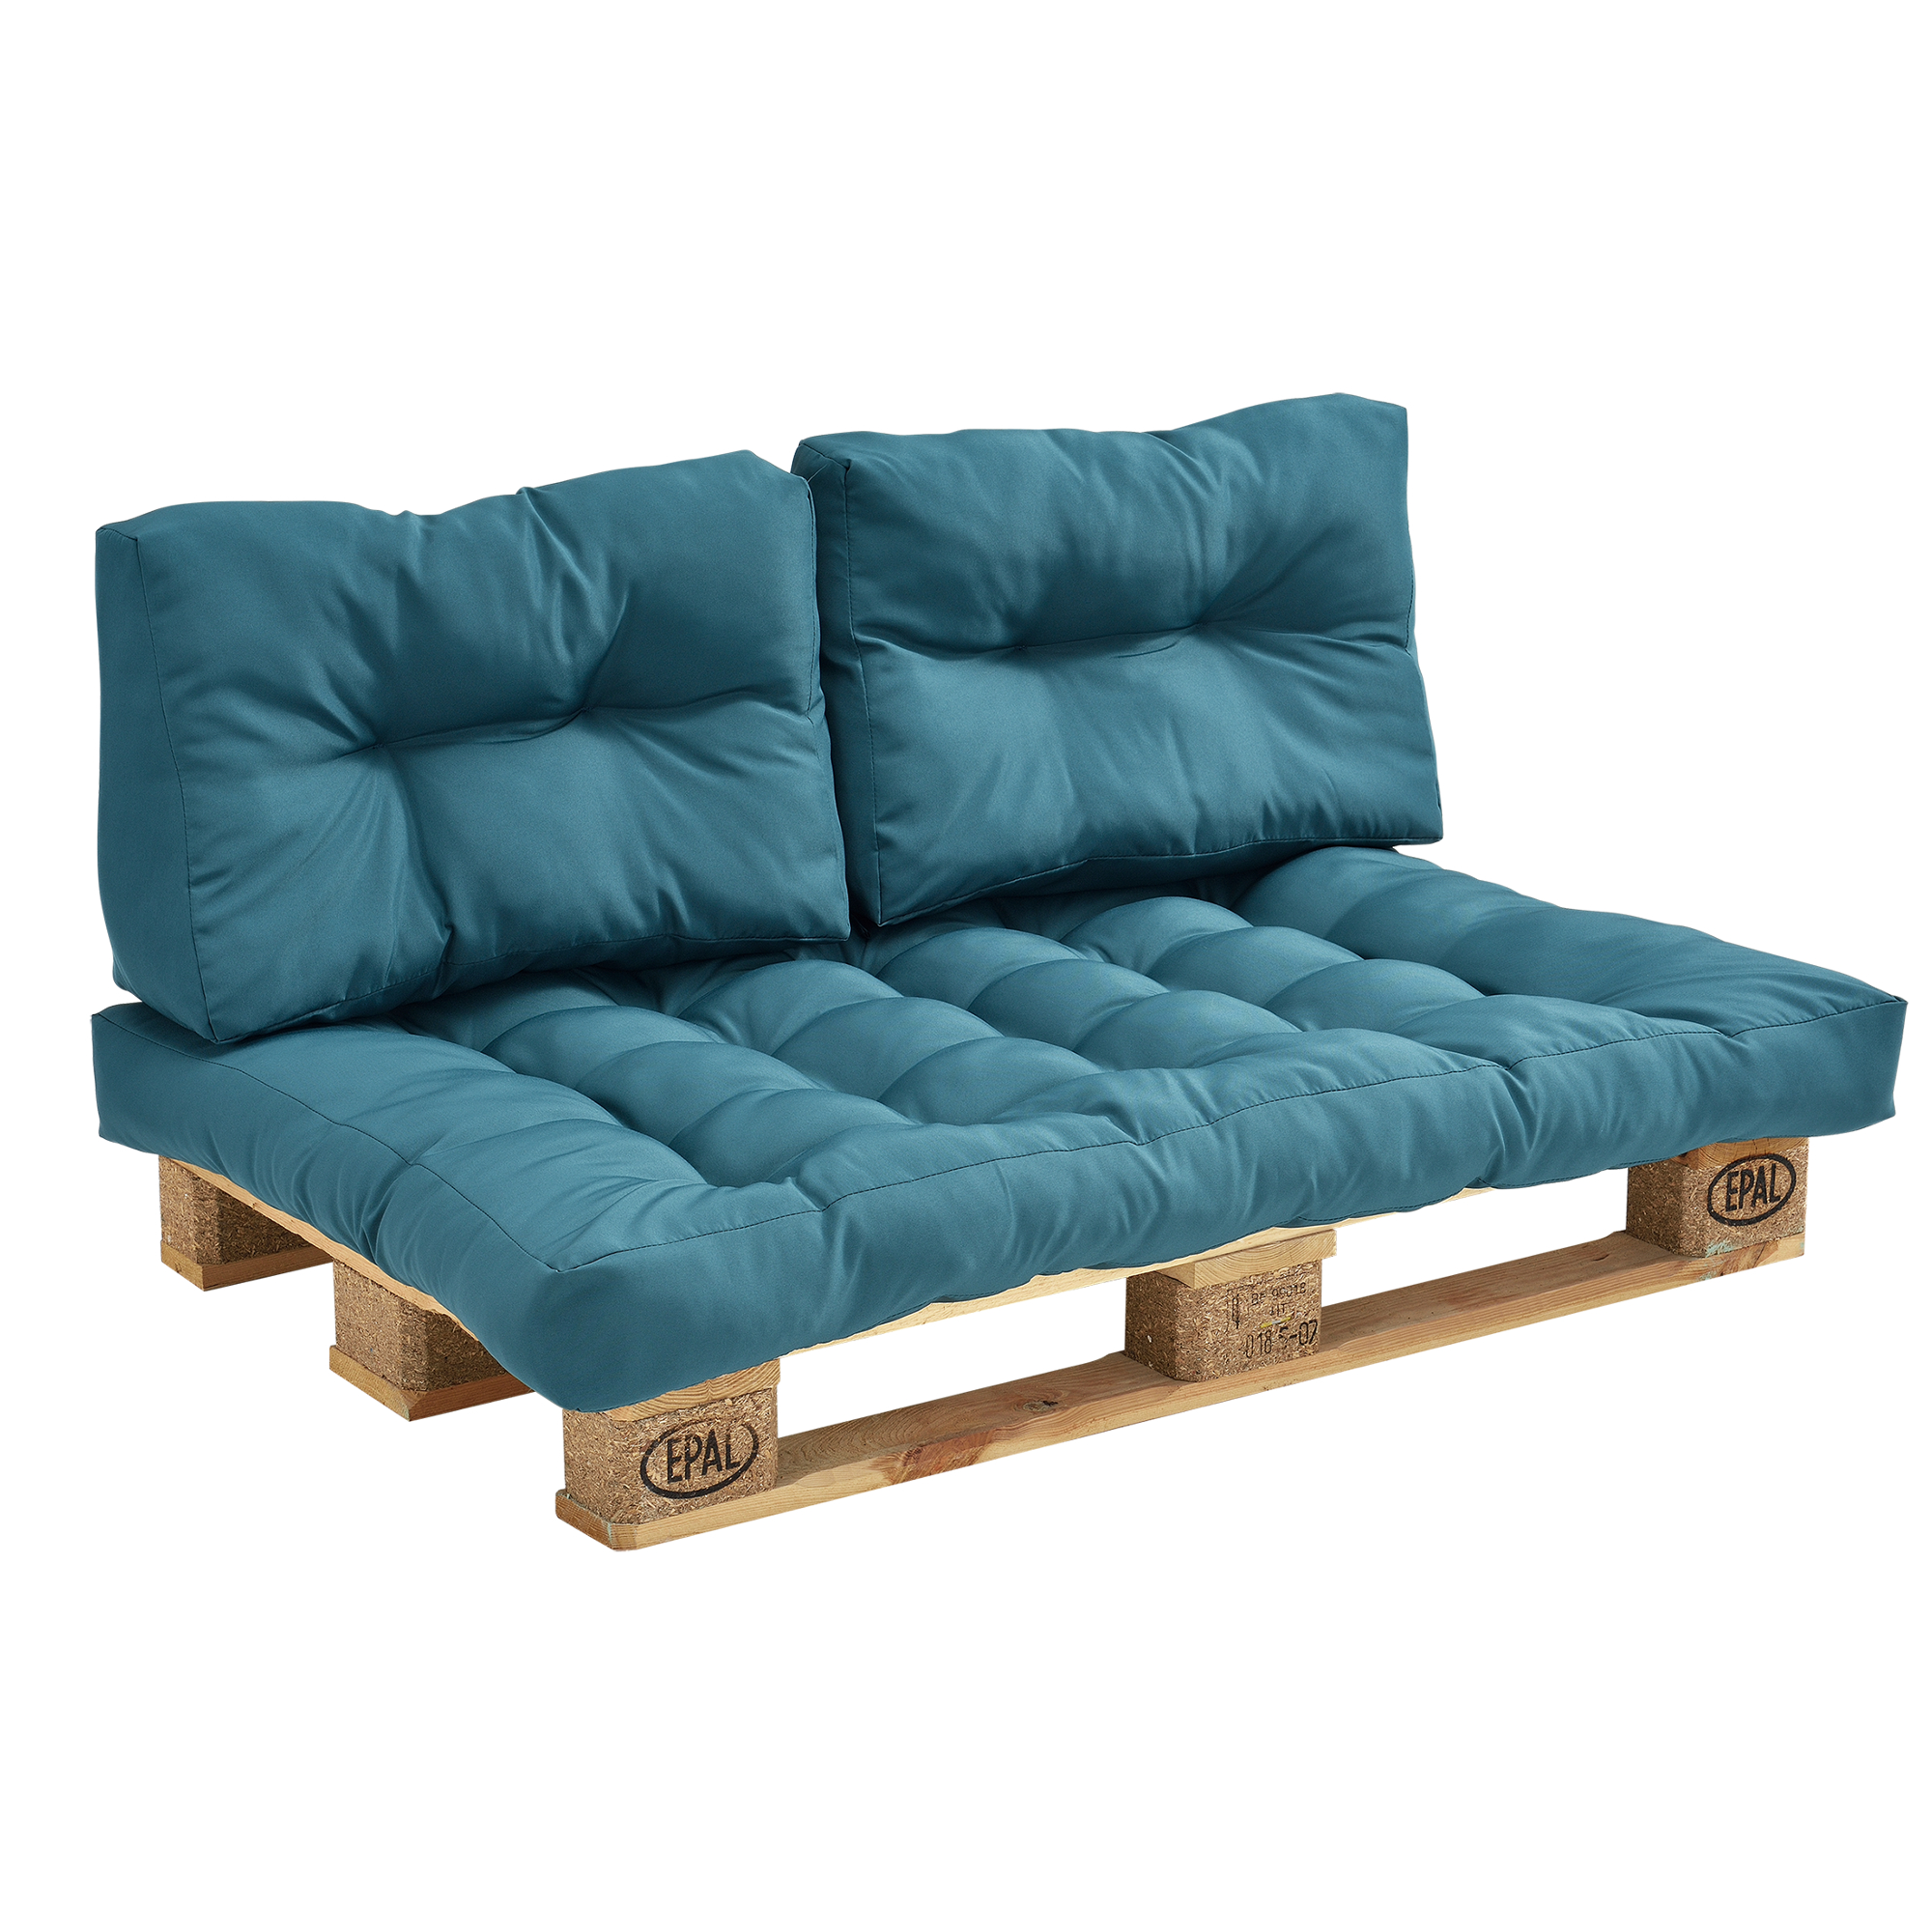 pallet cushions in outdoor sofa padding seat. Black Bedroom Furniture Sets. Home Design Ideas